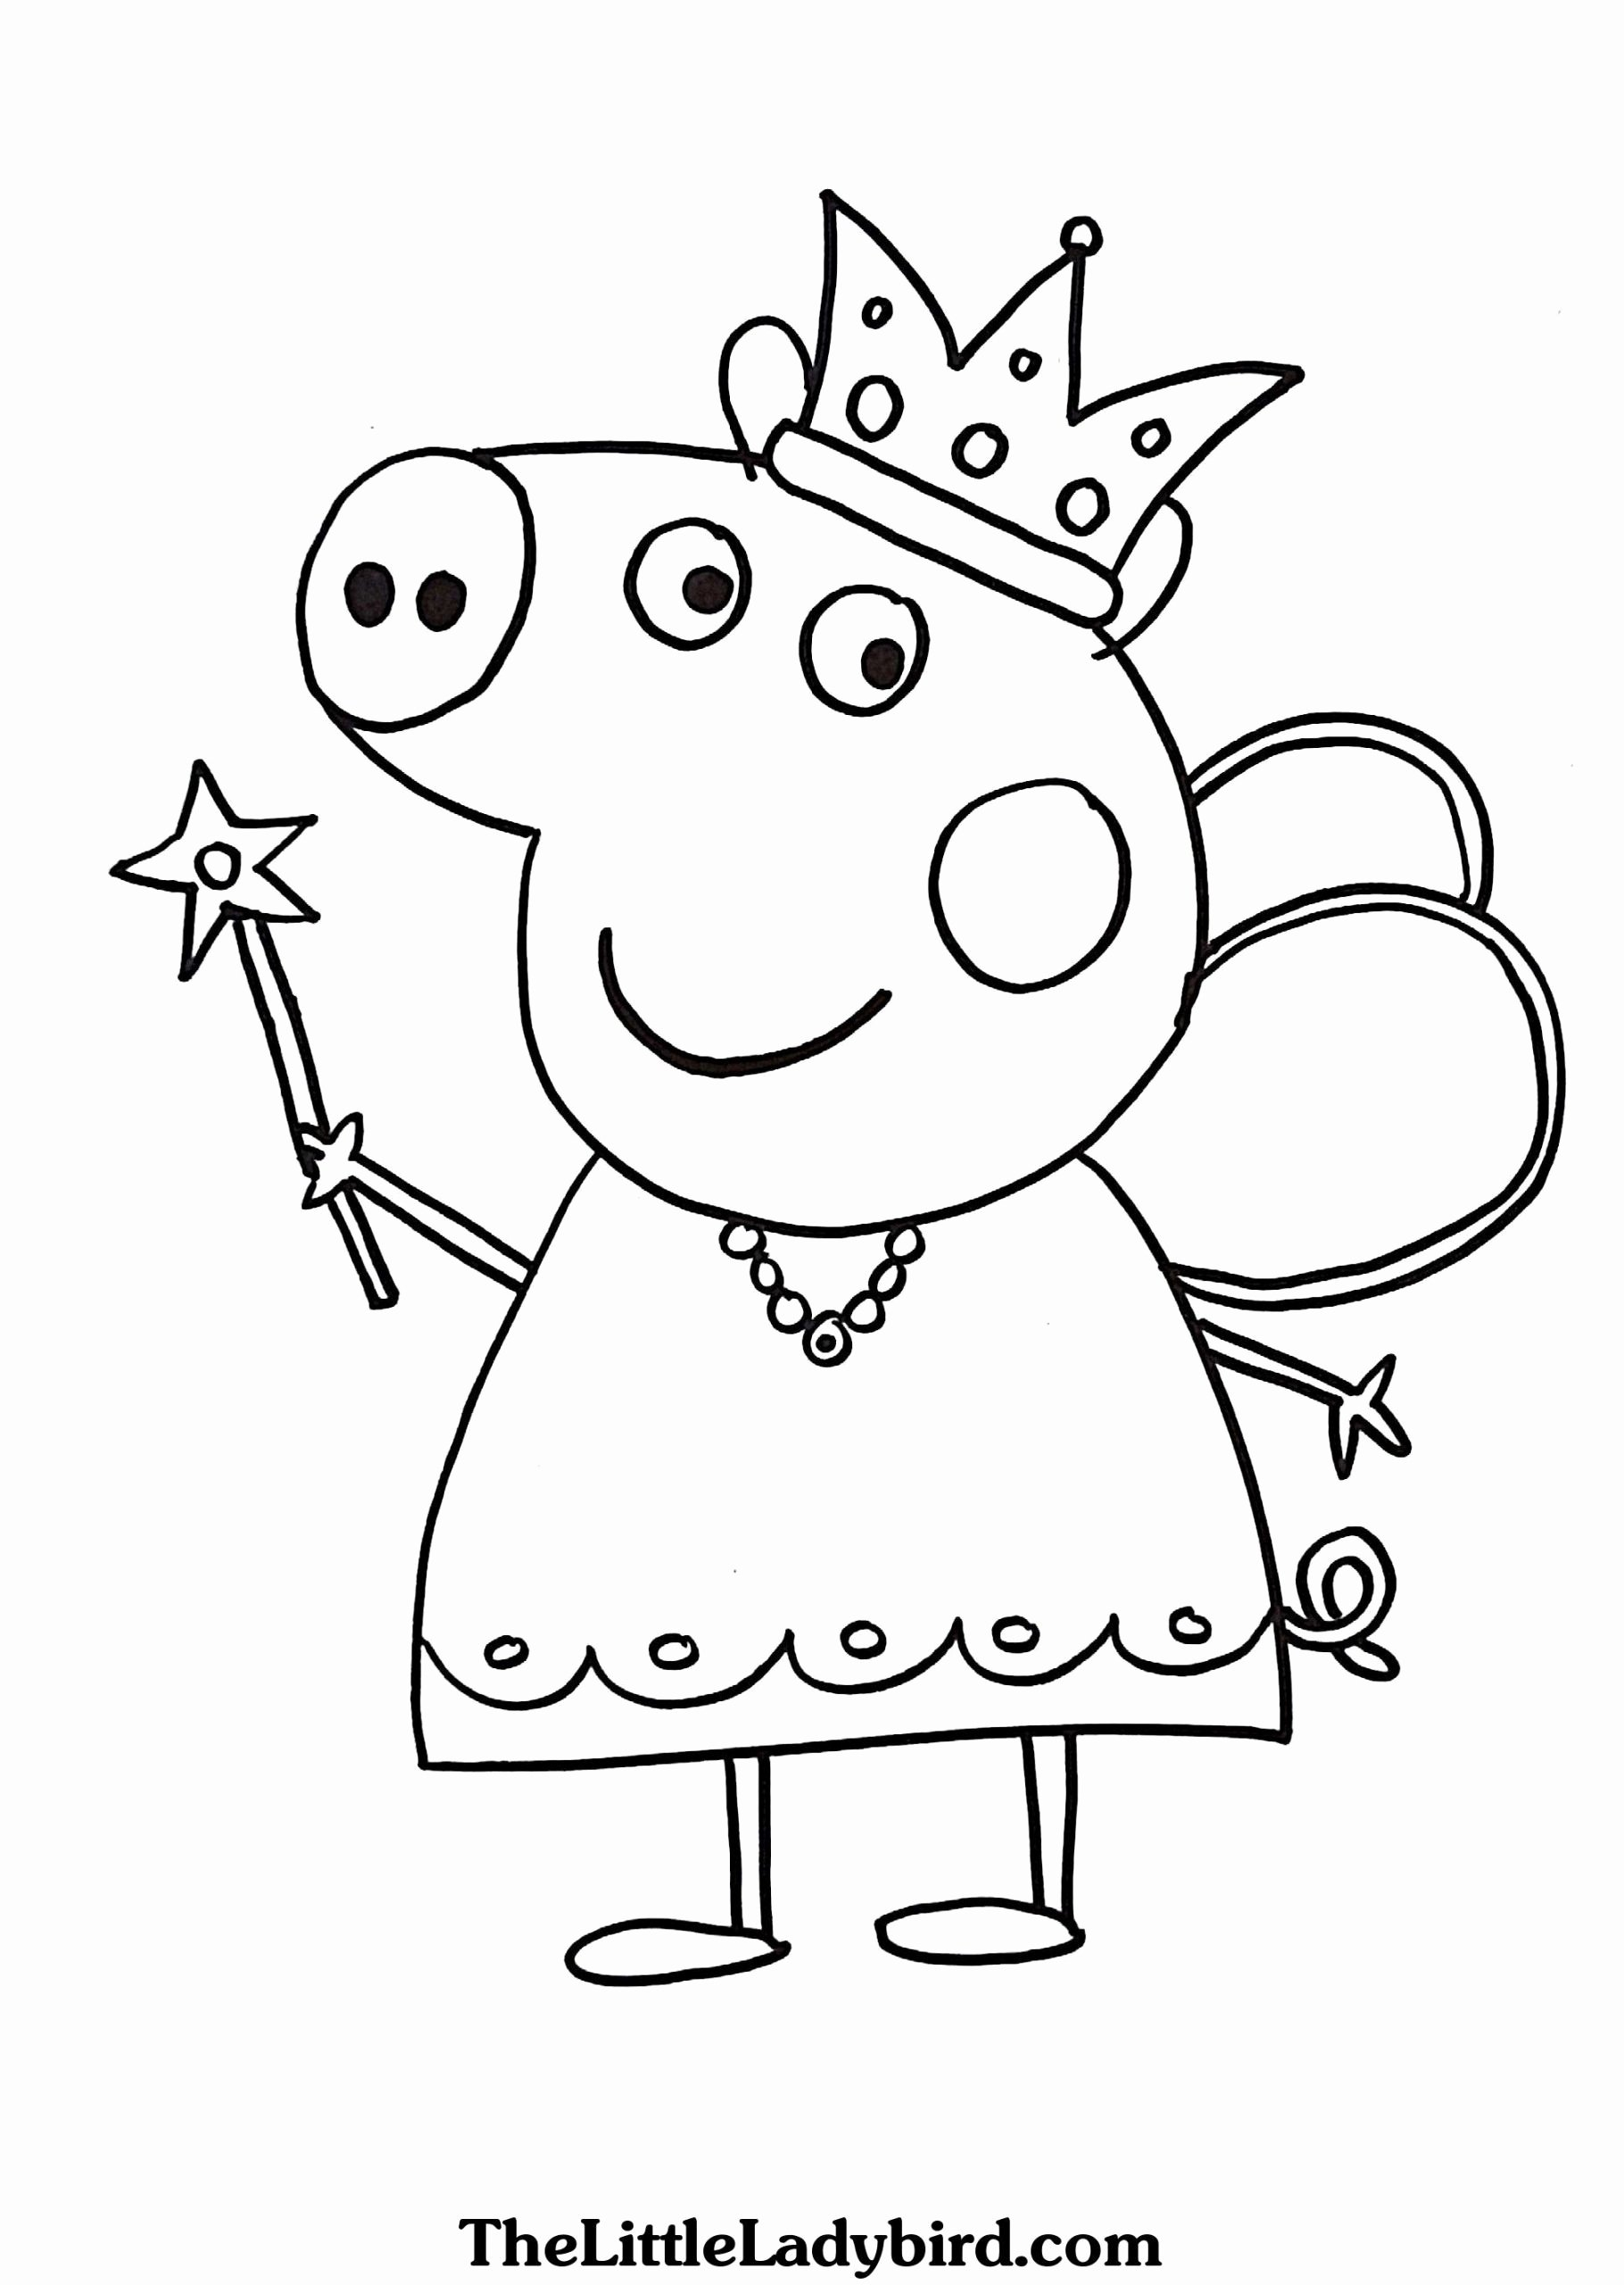 Printable Coloring Worksheets for Preschoolers top Free Printable Coloring Pages for Preschoolers Firstay